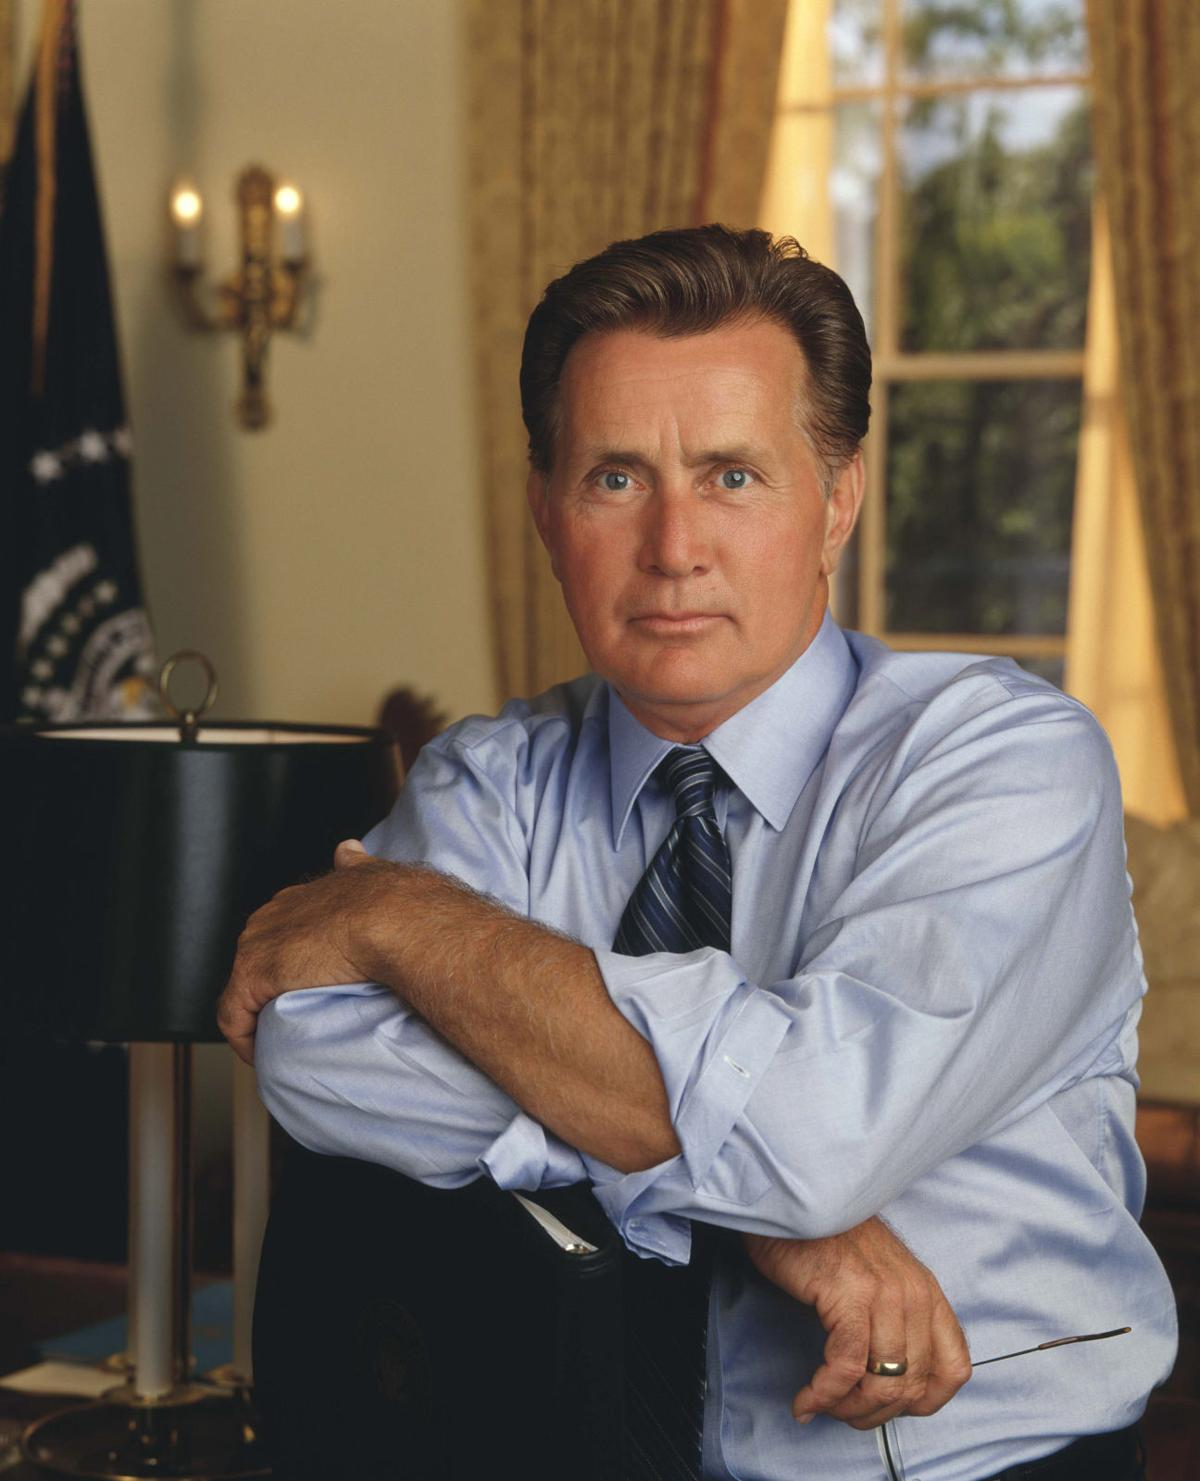 Martin Sheen in 'The West Wing' for Red